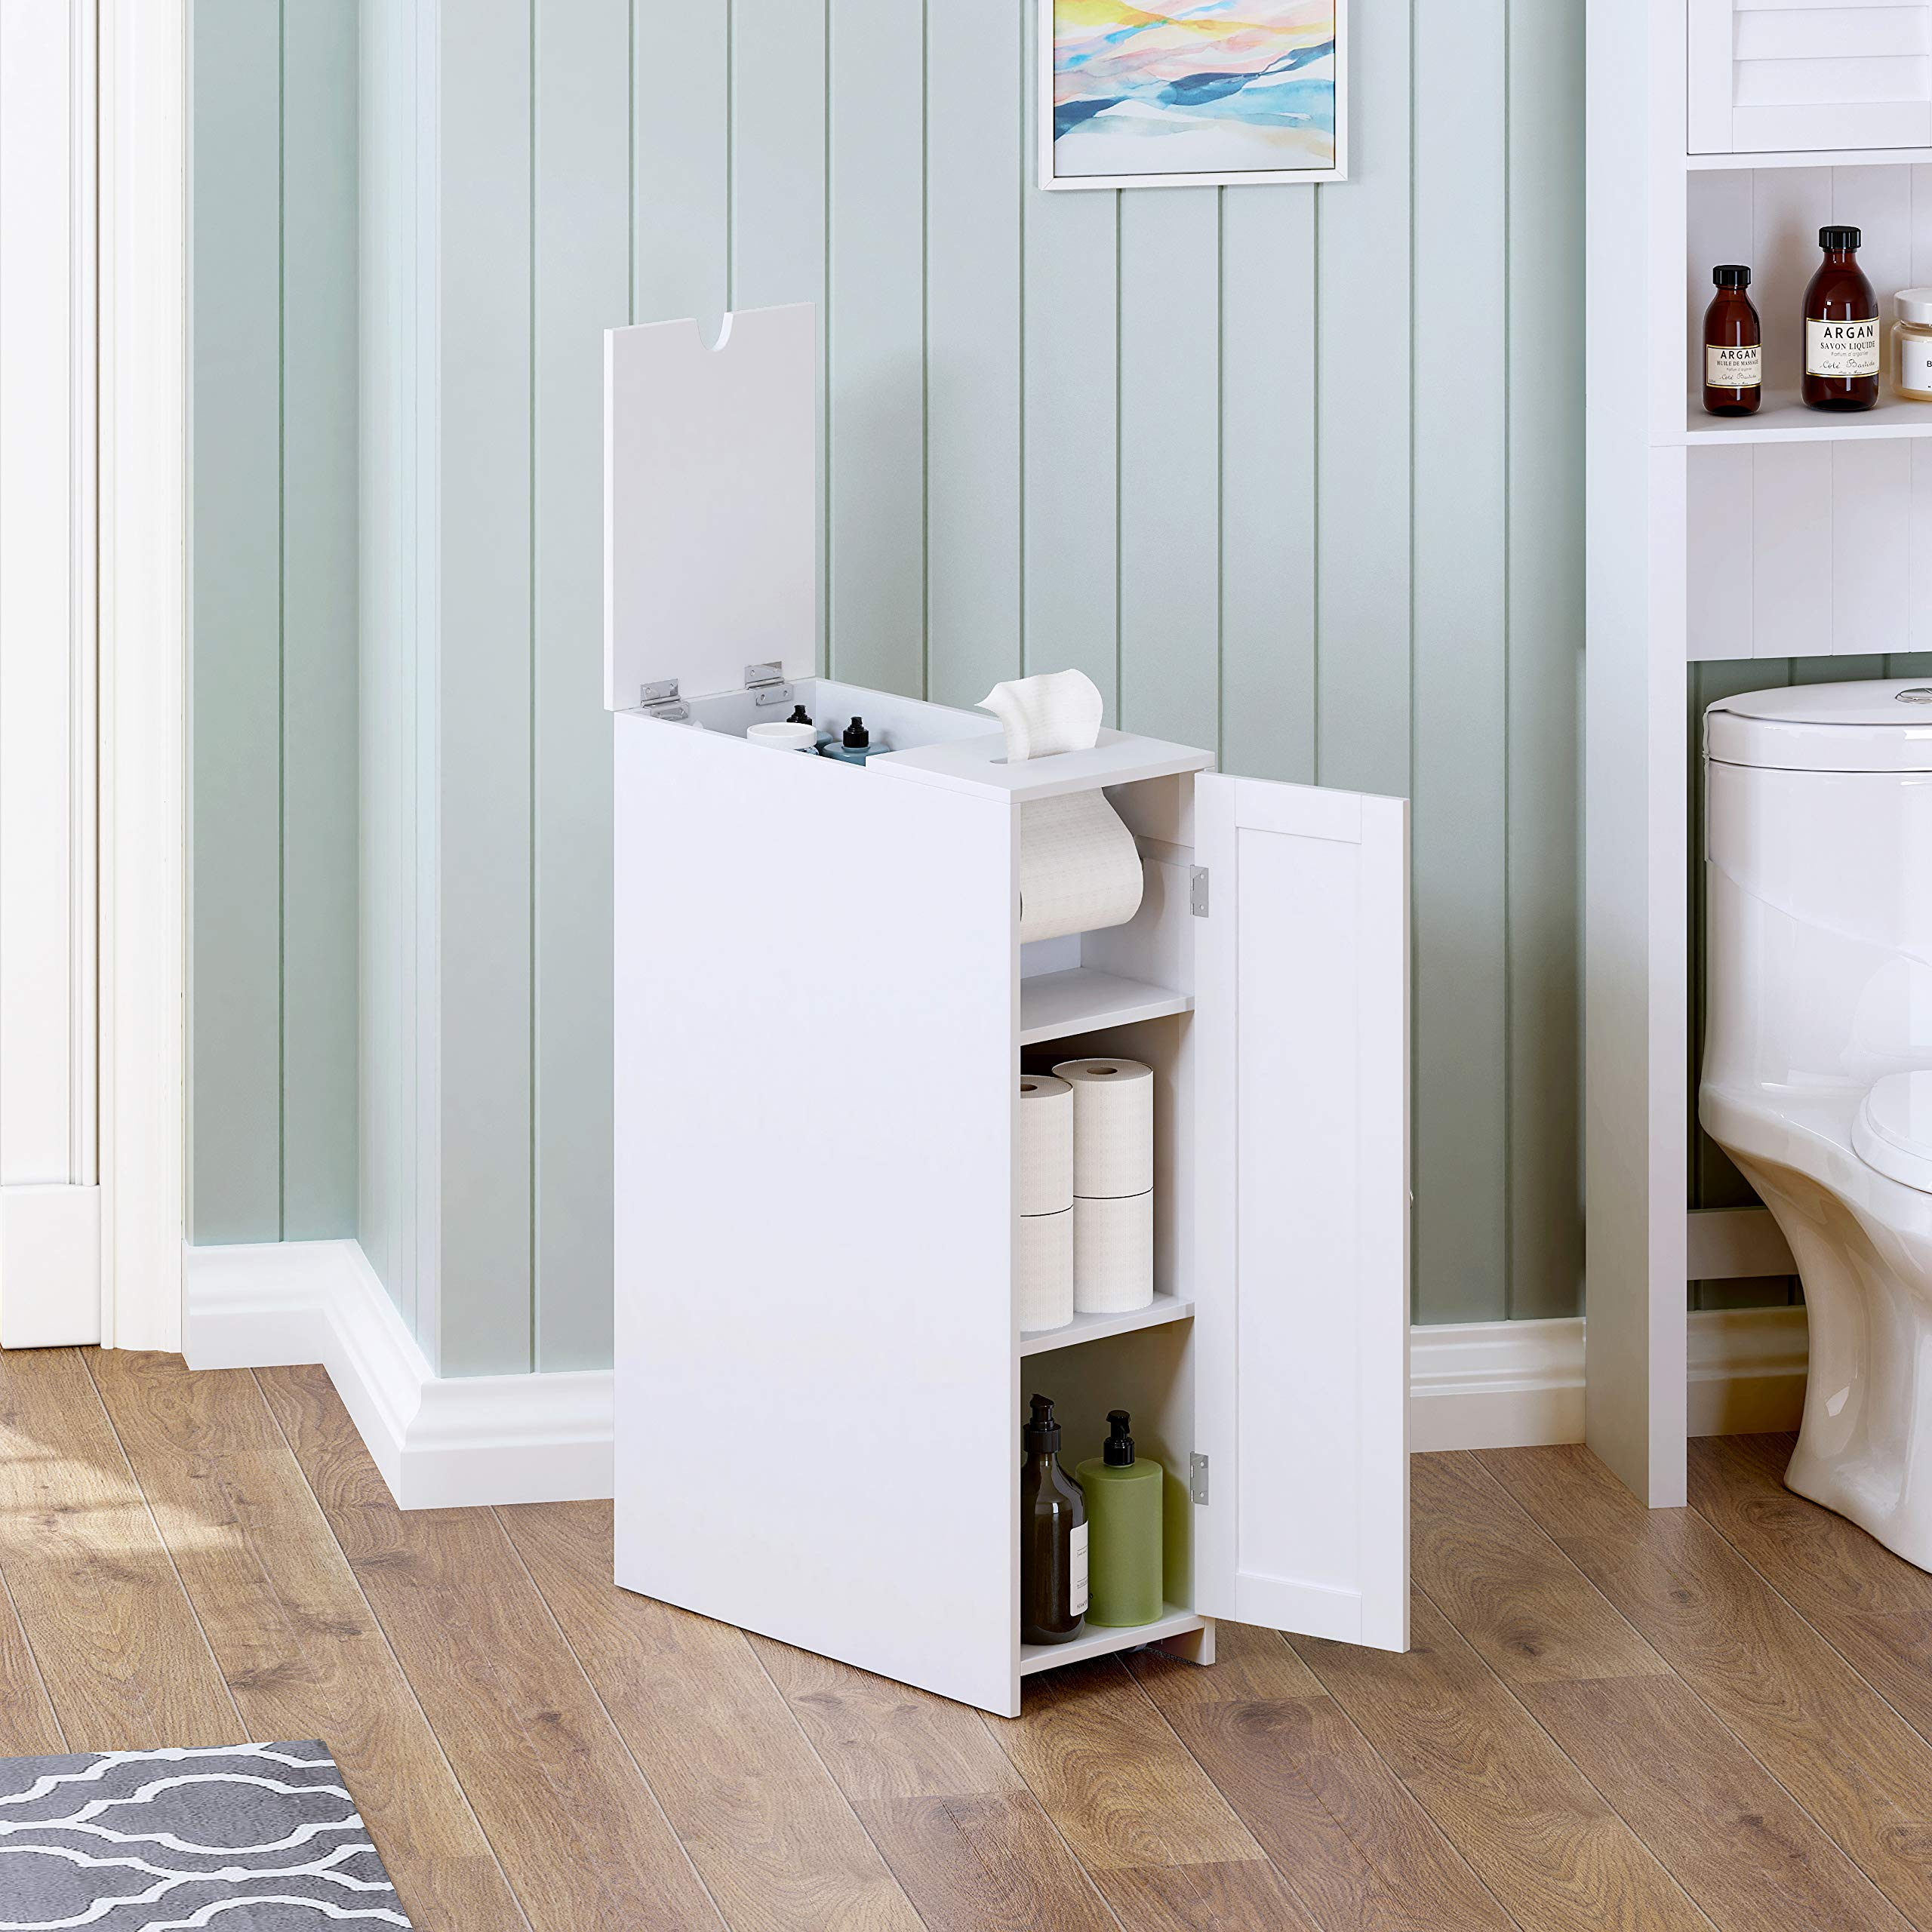 Utex Slim Bathroom Toilet Paper Storage Cabinet With Rolling Toilet Paper Holder Free Standing Toilet Paper Holder Bathroom Cabinet 9 W X 30 H X 20 D White Home Kitchen